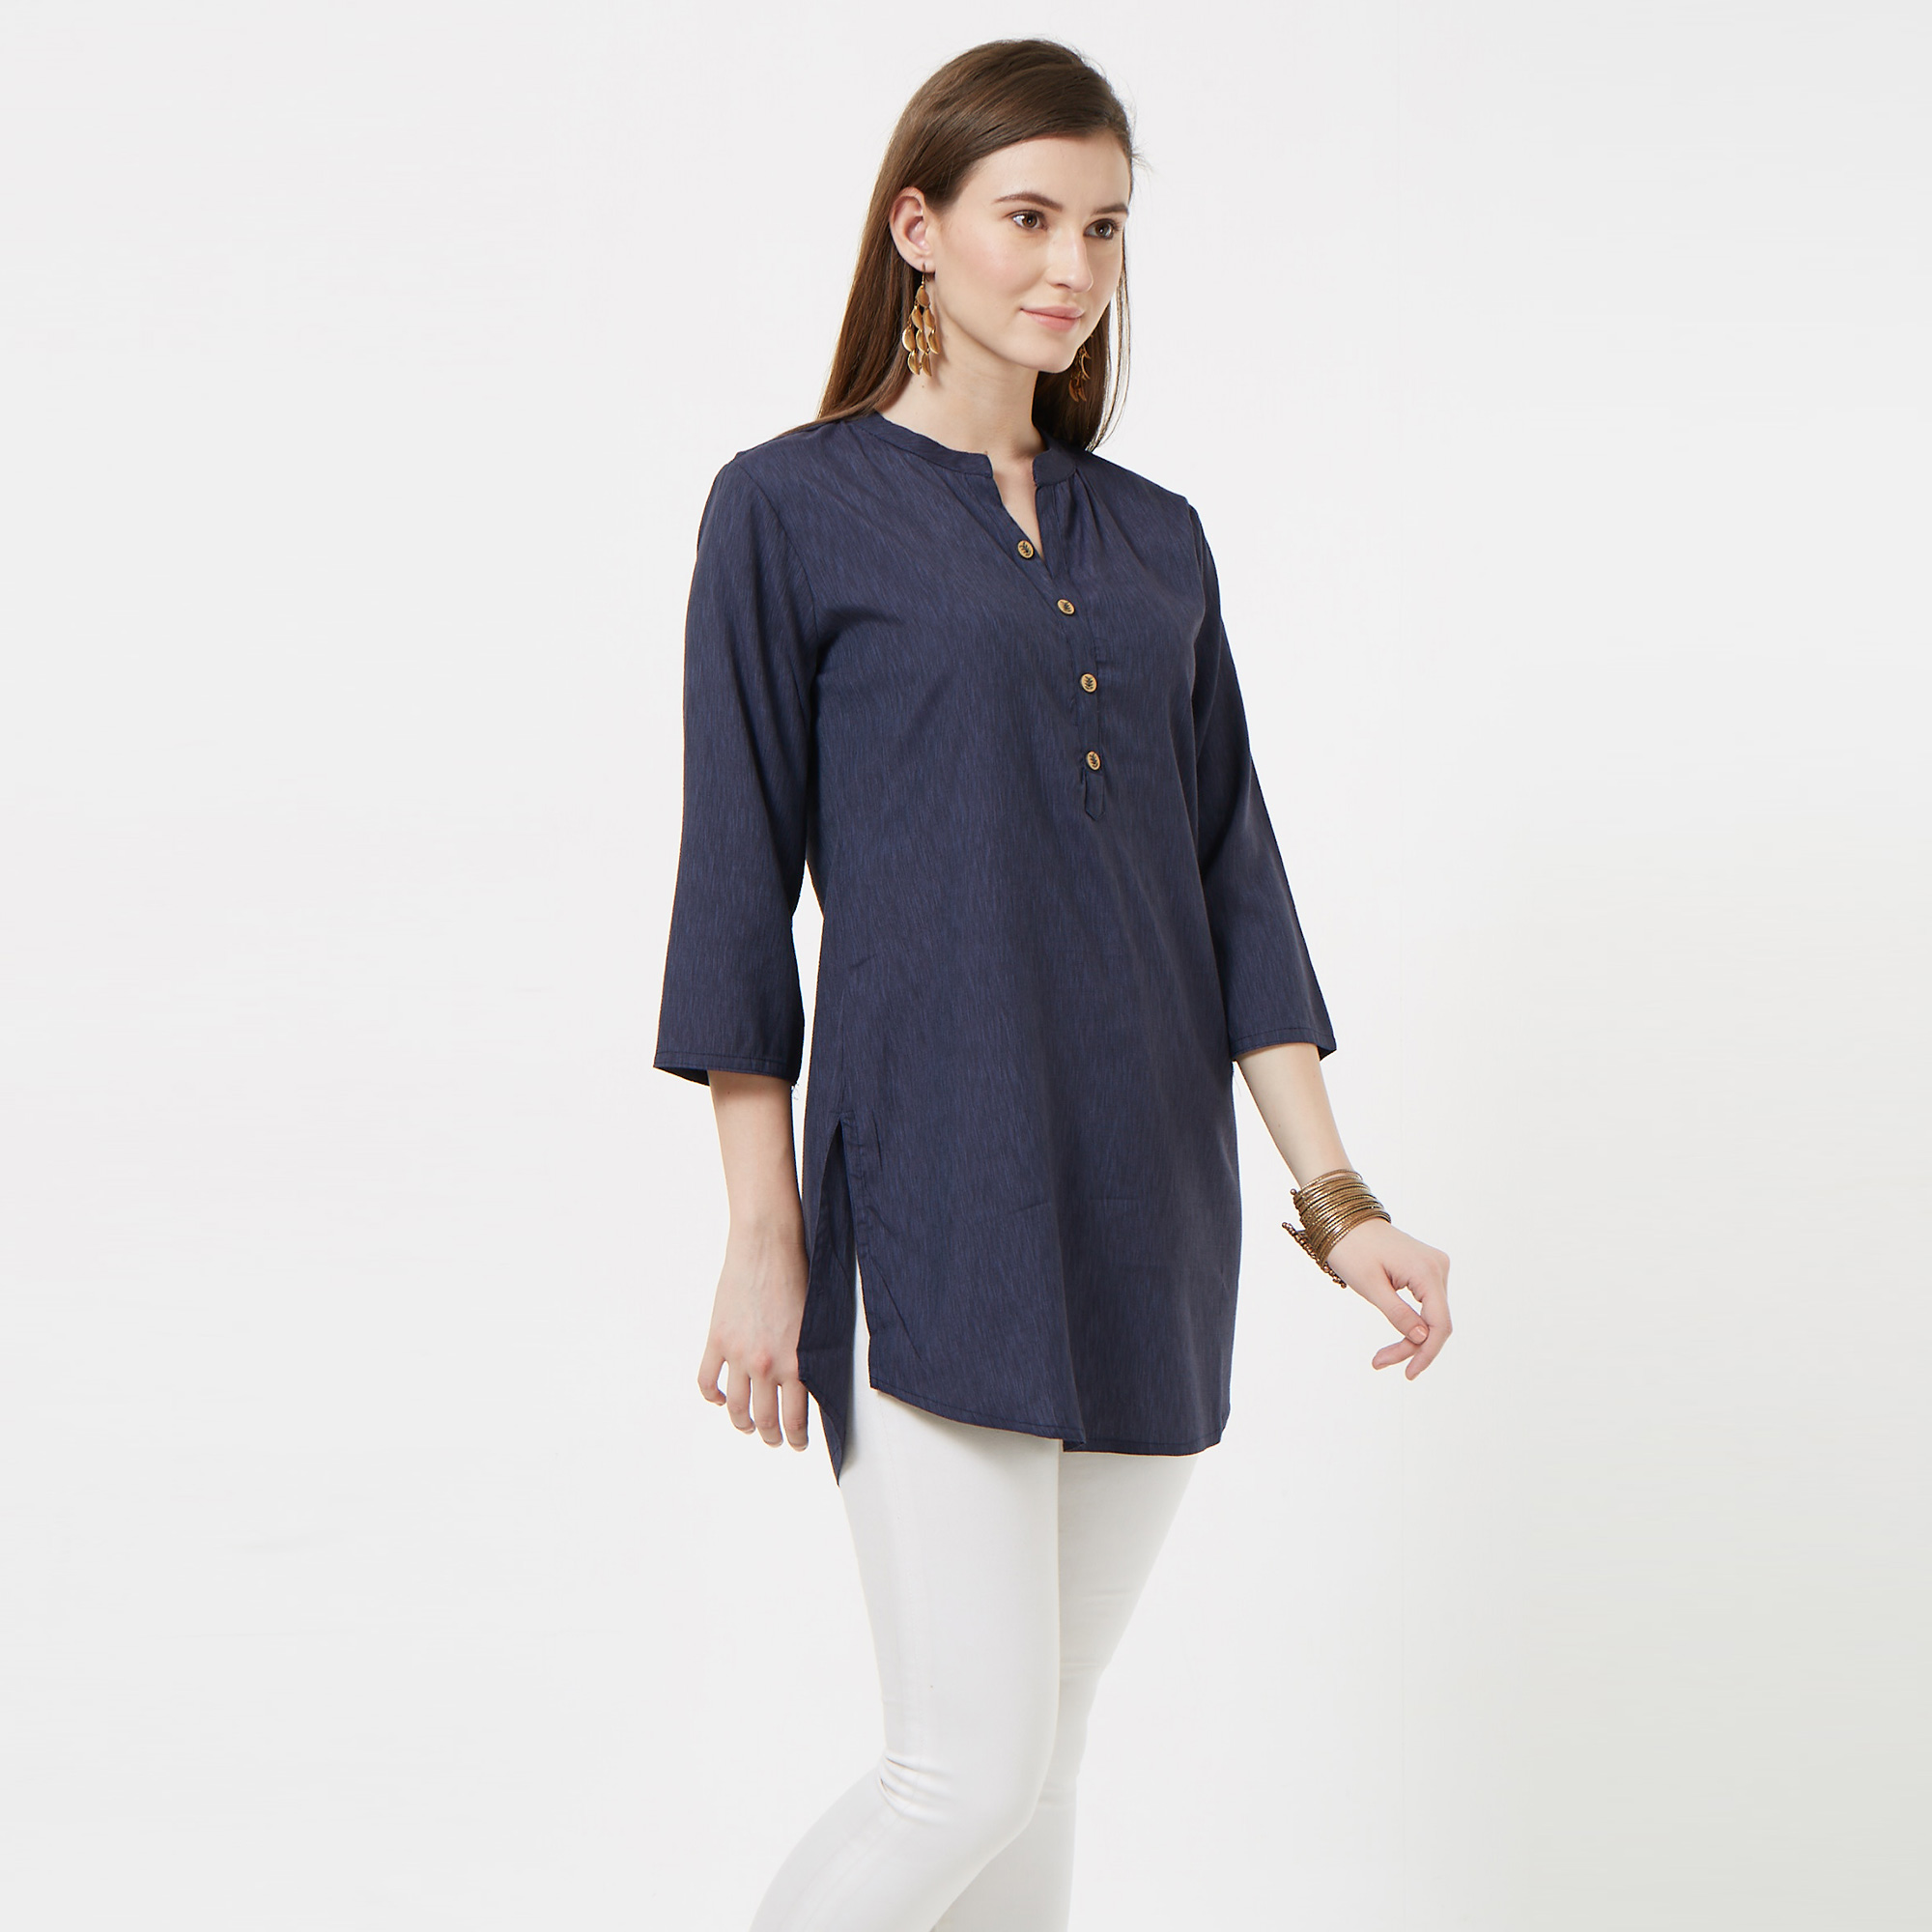 Groovy Navy Blue Colored Casual Wear Cotton Short Kurti